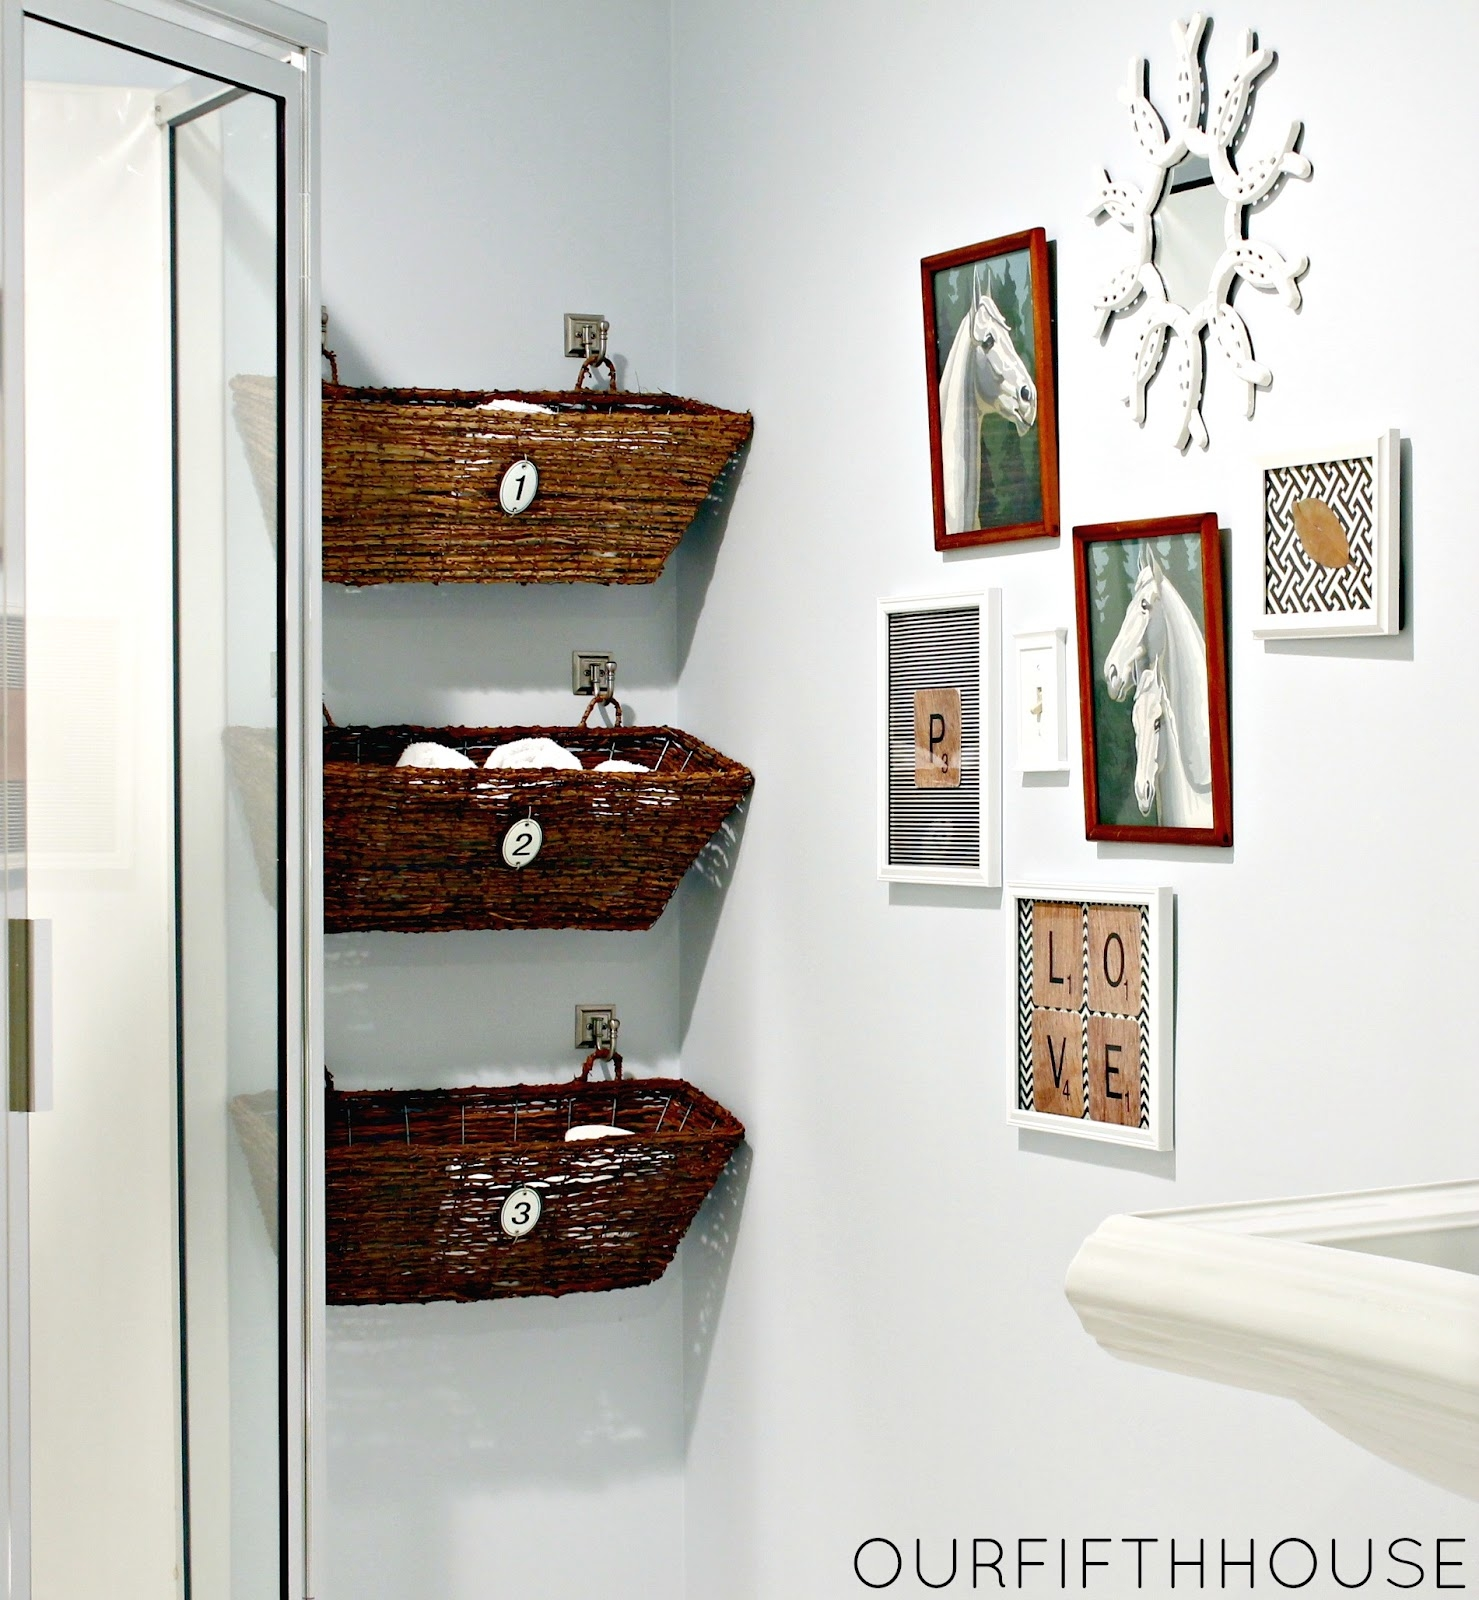 Bathroom Cabinet Storage Baskets12 small bathroom storage ideas wall storage solutons and